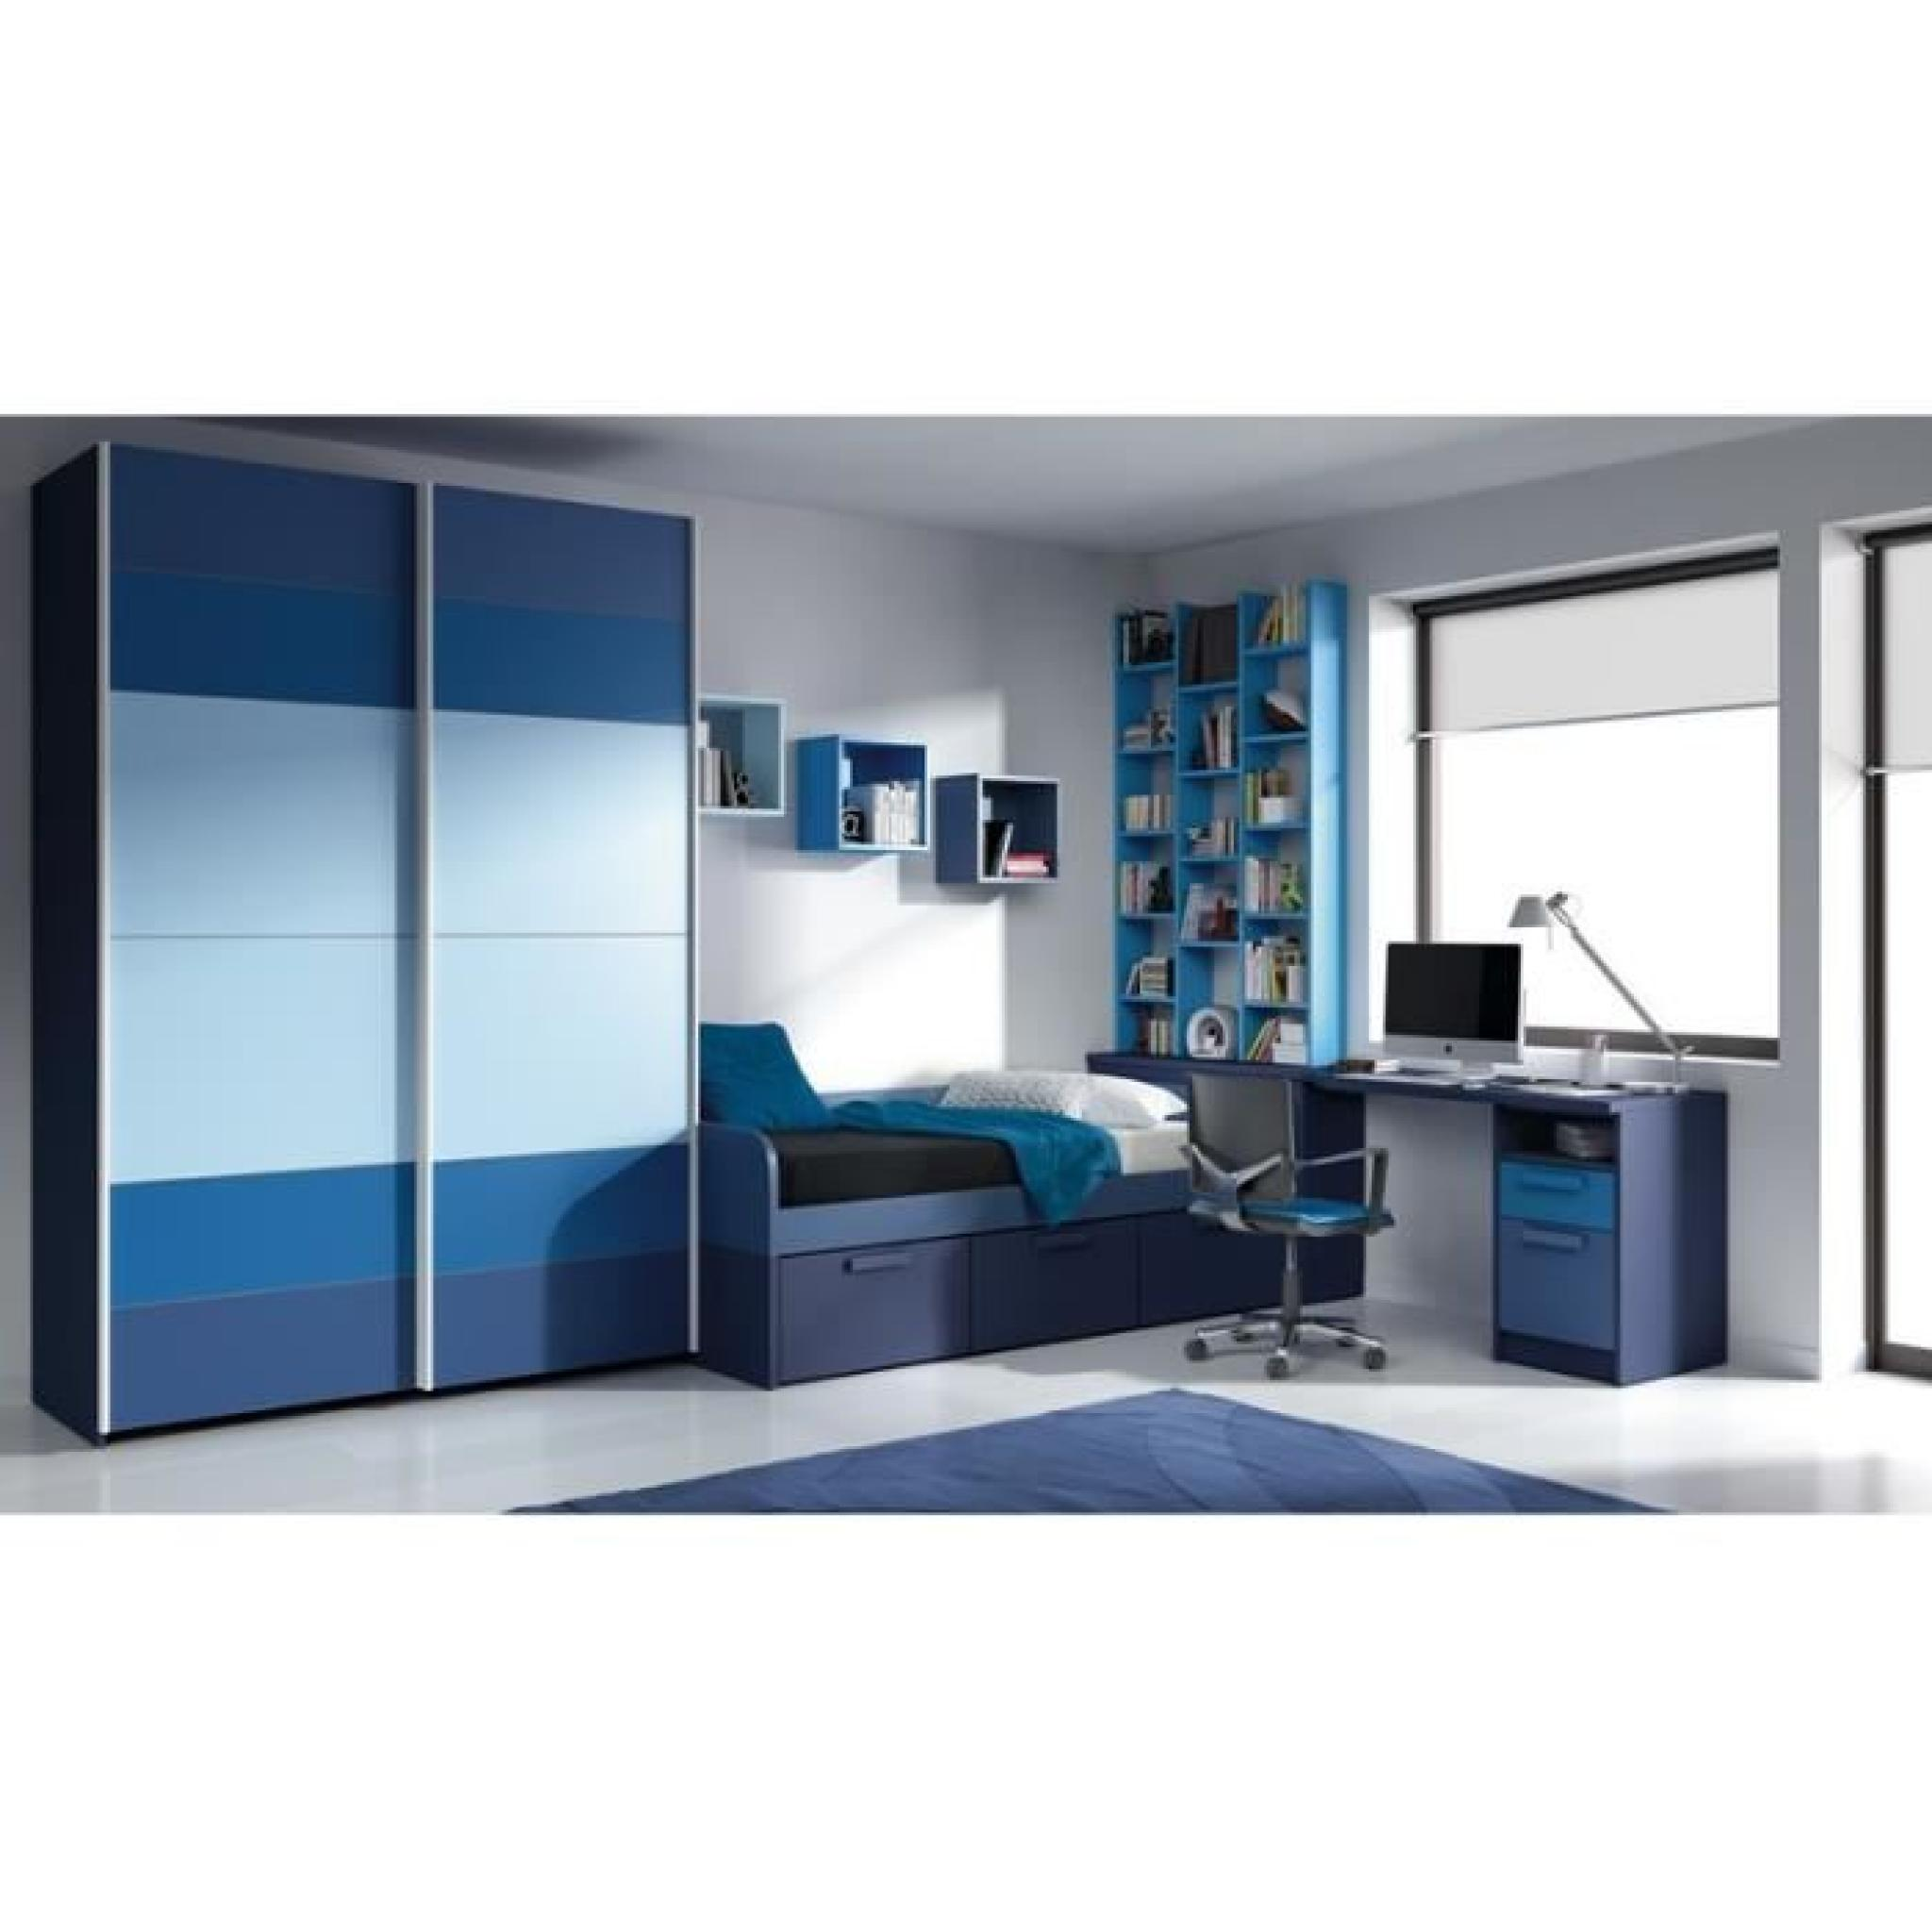 chambre alia grand bleu lit bureau et armoire achat. Black Bedroom Furniture Sets. Home Design Ideas